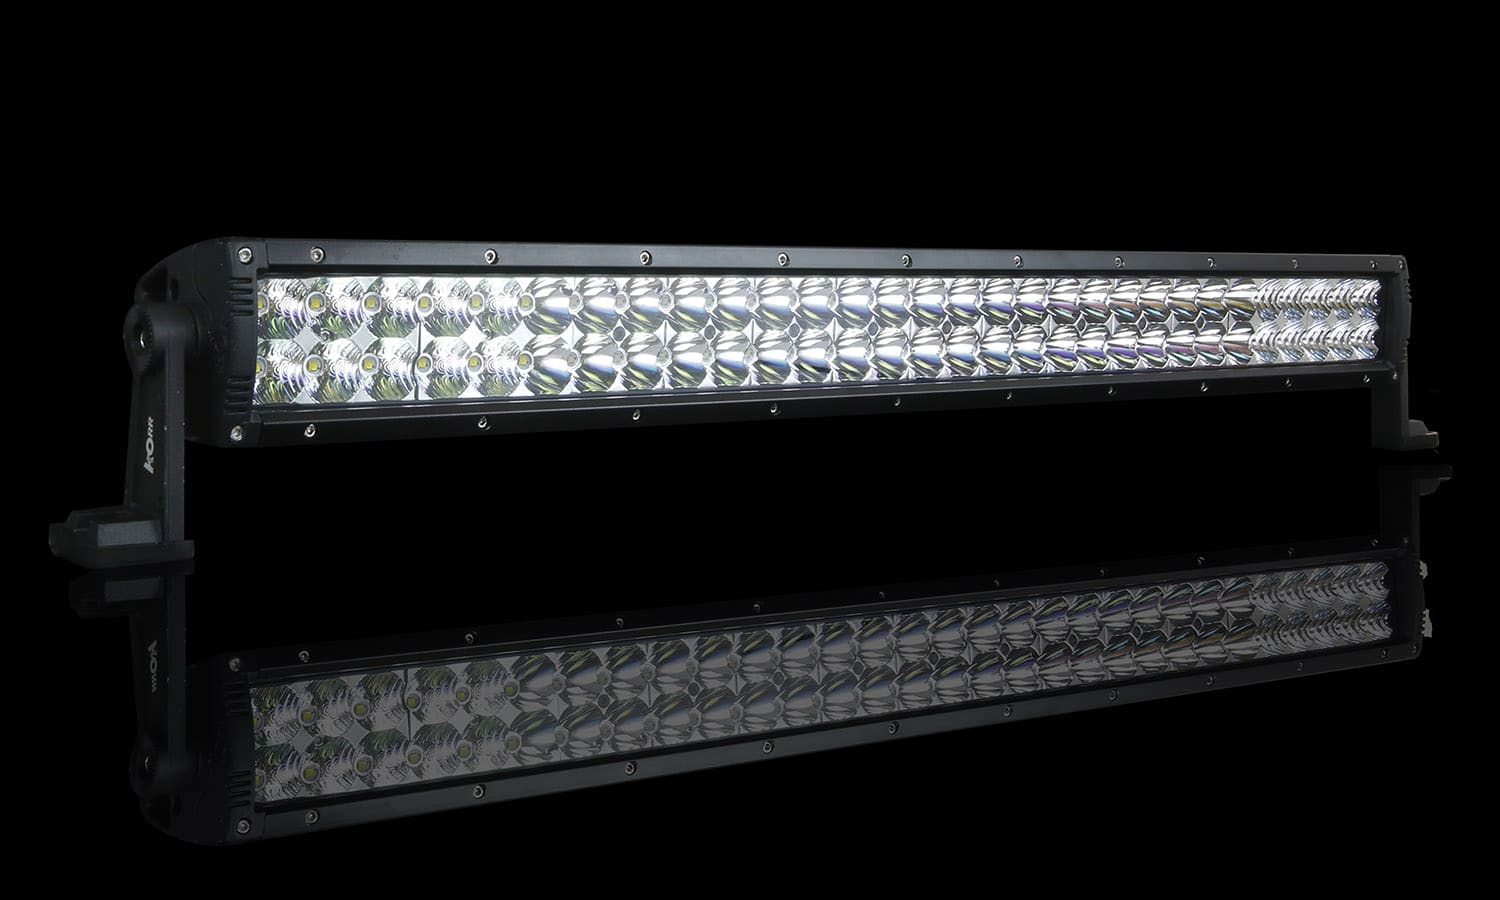 xd gen3 27 dual row led light bar xdd600 g3 hard korr. Black Bedroom Furniture Sets. Home Design Ideas